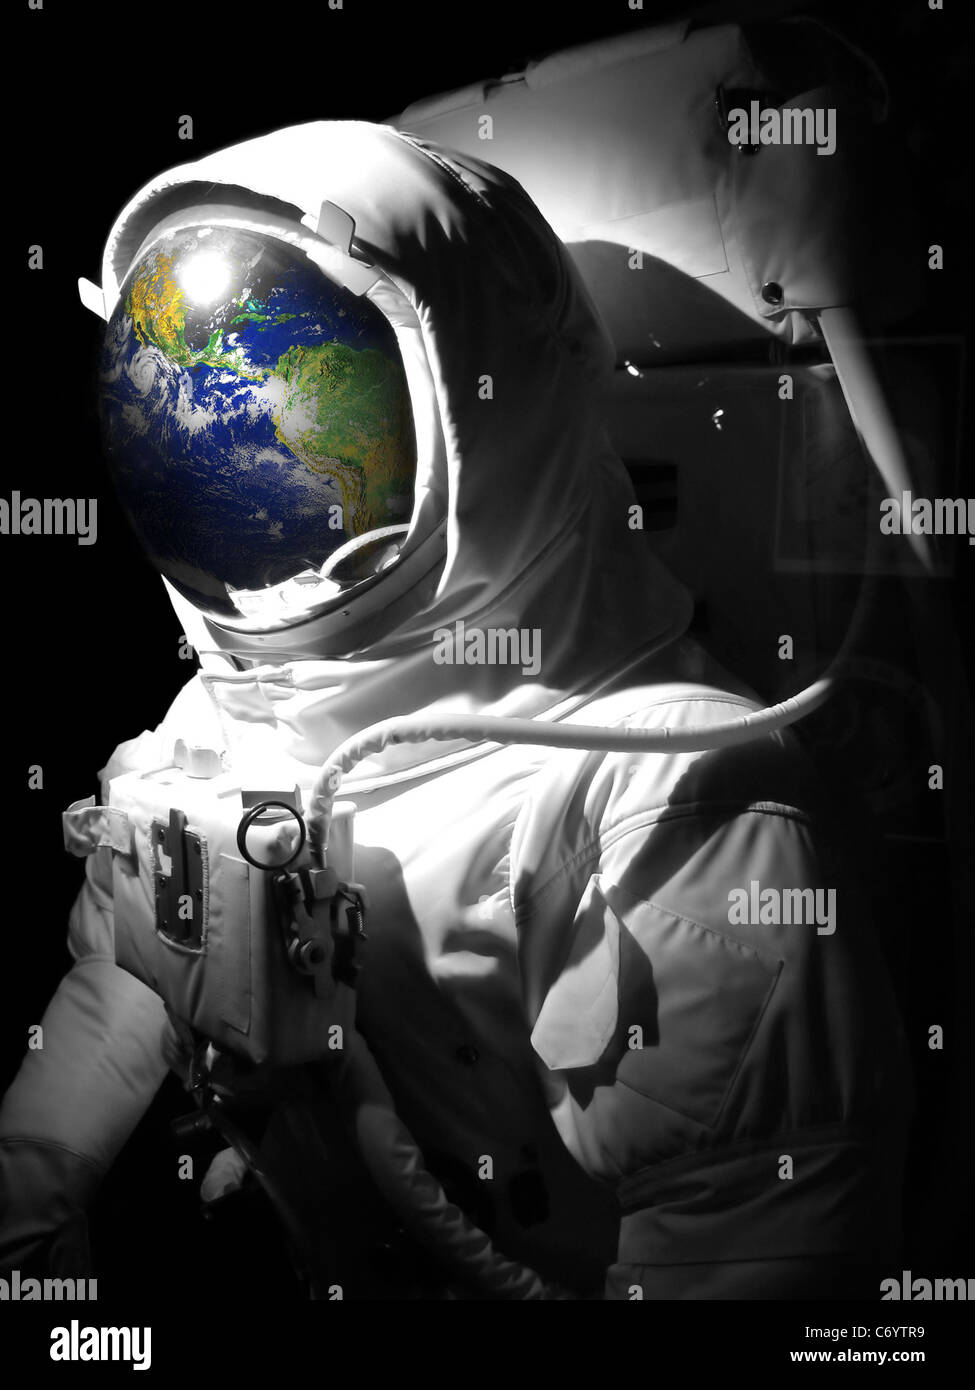 Space man astronaut suit with a reflection of the earth in ...